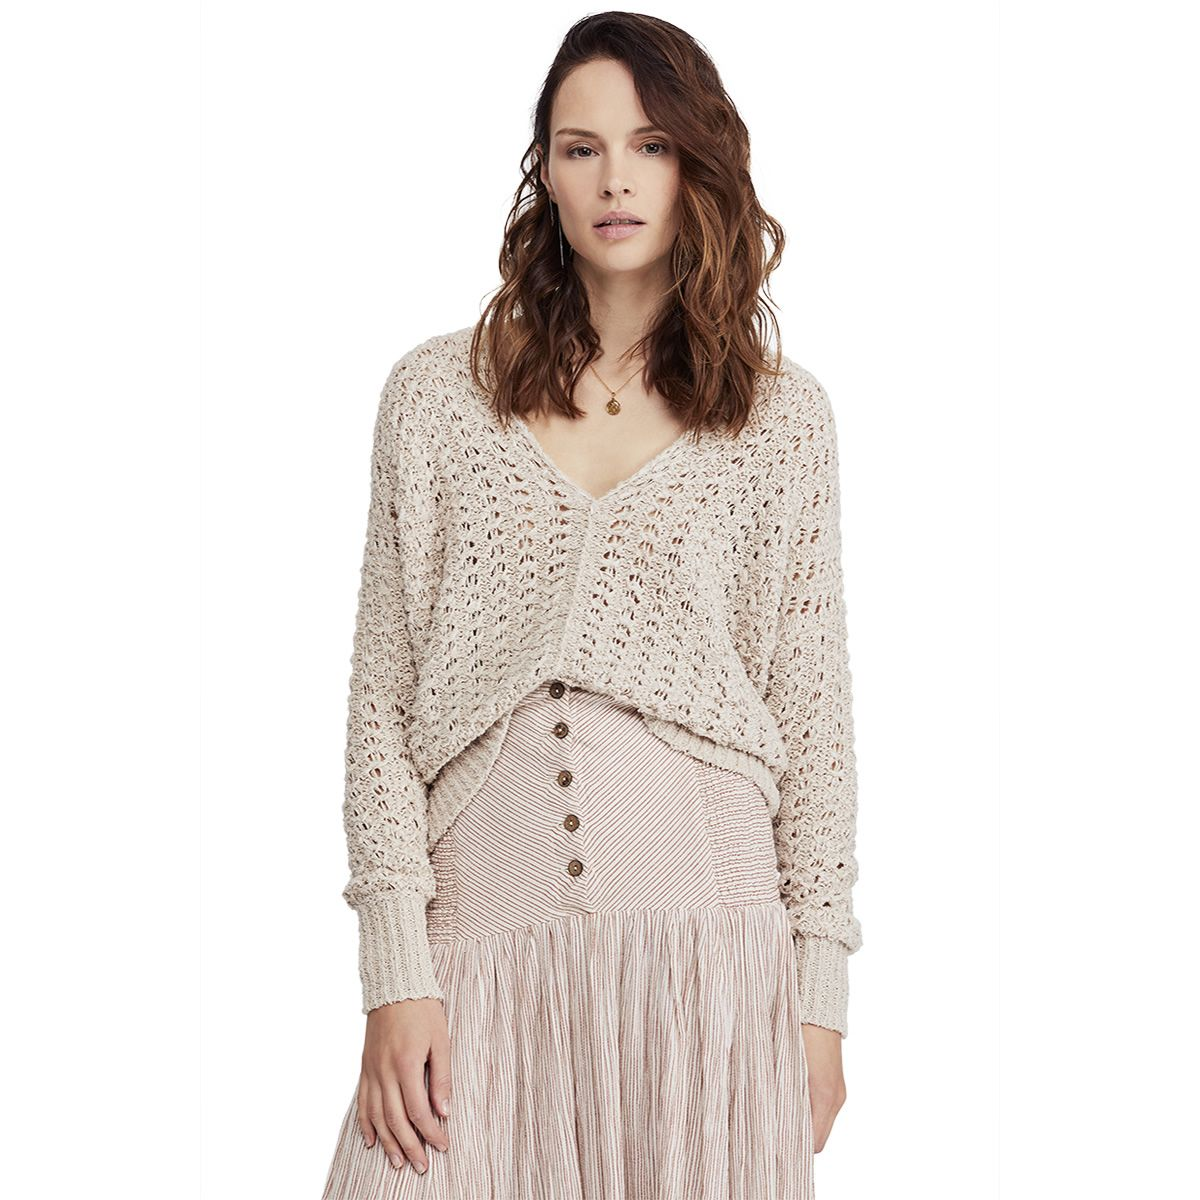 f72bde0609085 Free People Clothing - Womens Apparel - Macy s